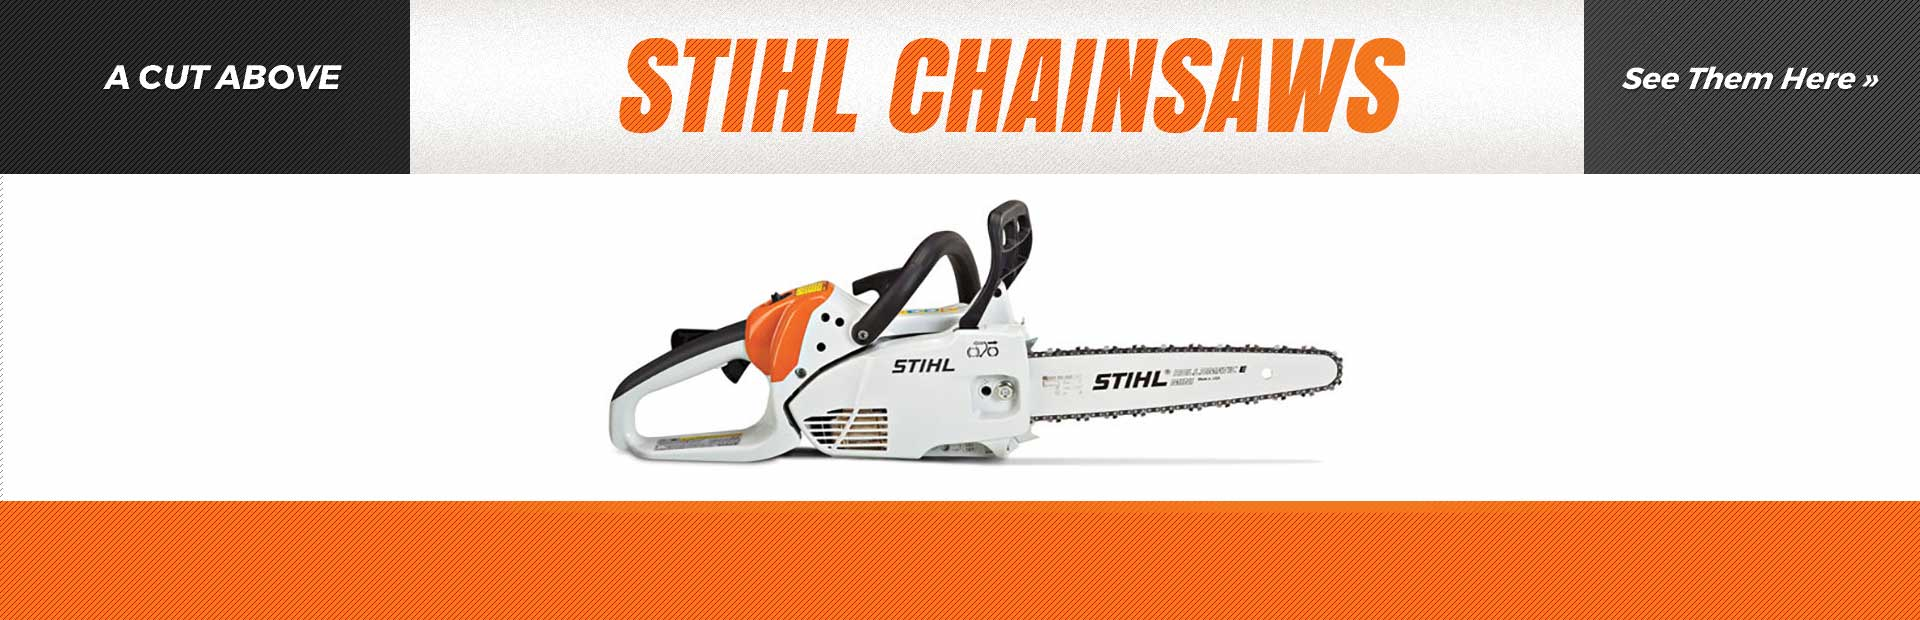 STIHL Chainsaws: A cut above, click here now!